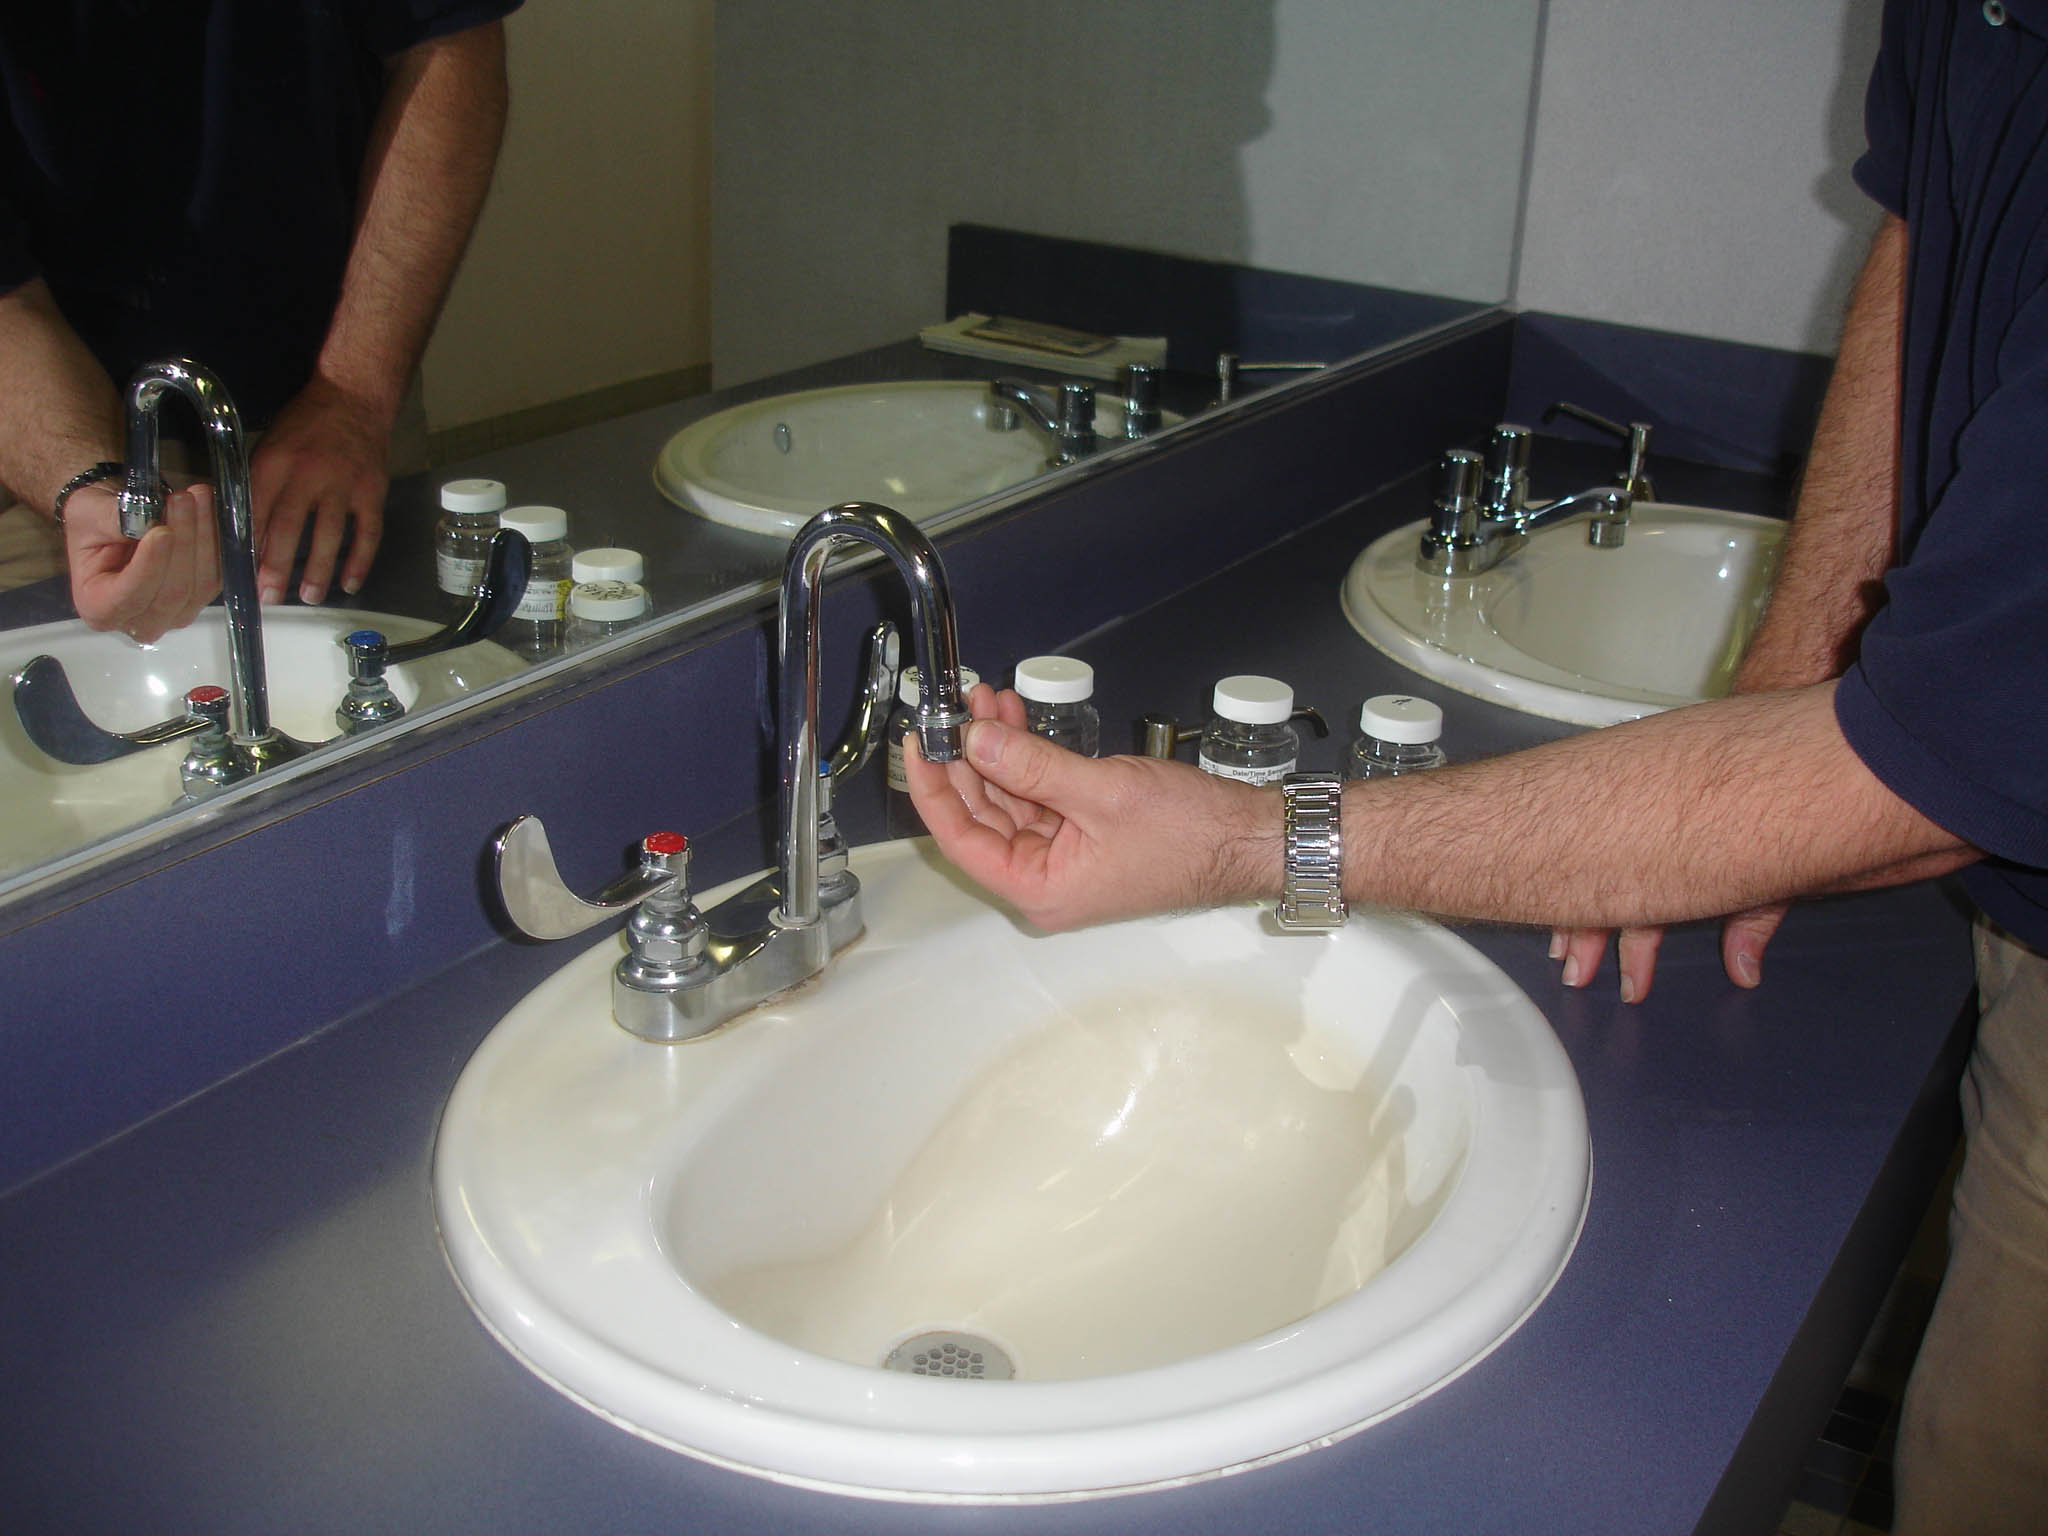 Photo showing the removal of aerator from sink faucet